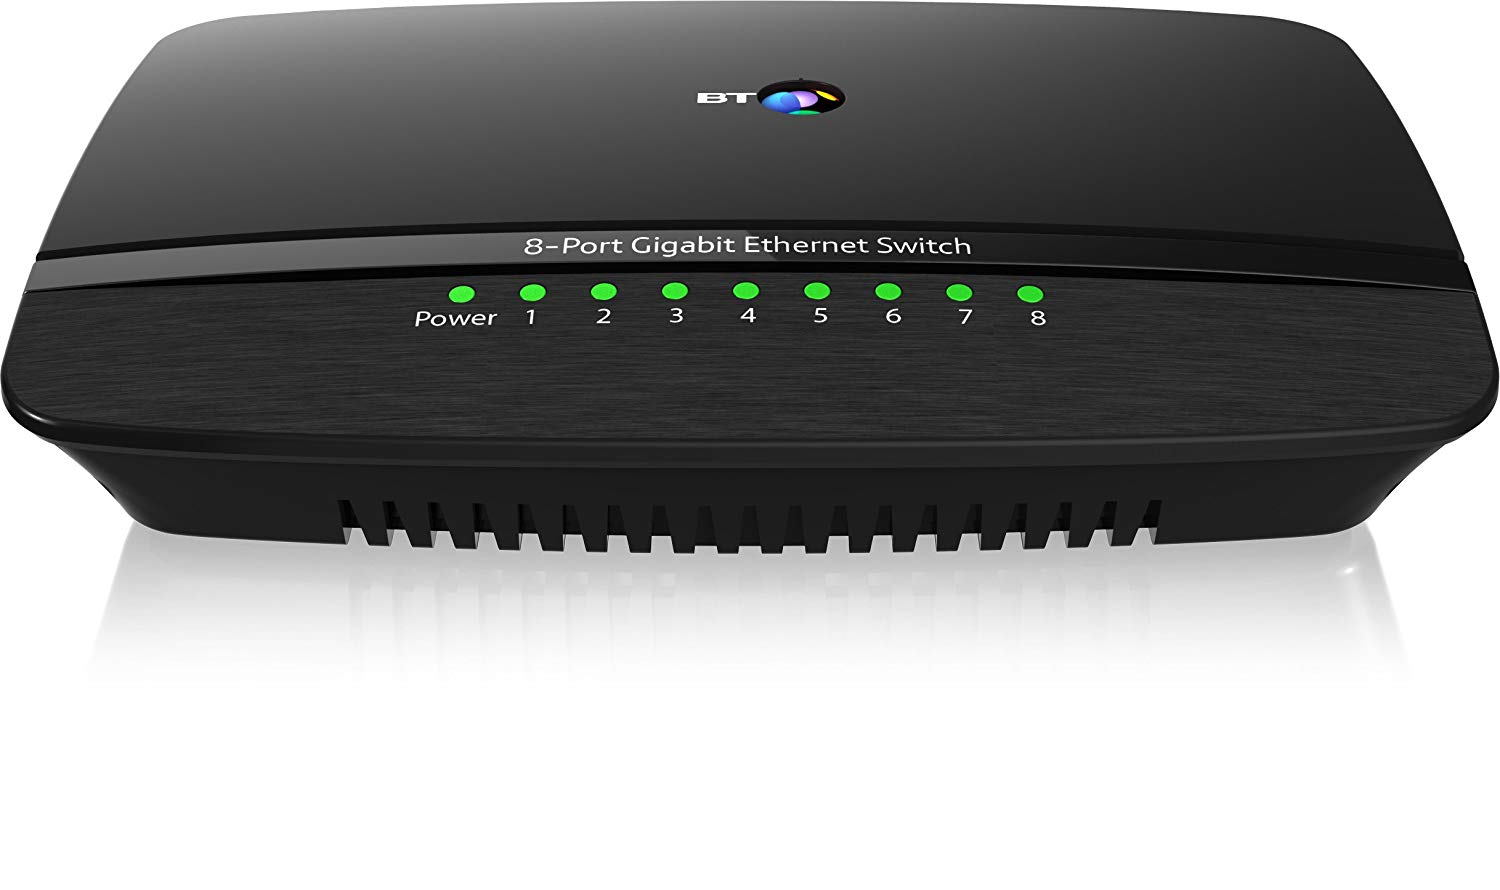 BT 8-Port Gigabit Ethernet Switch, Black for £24.99